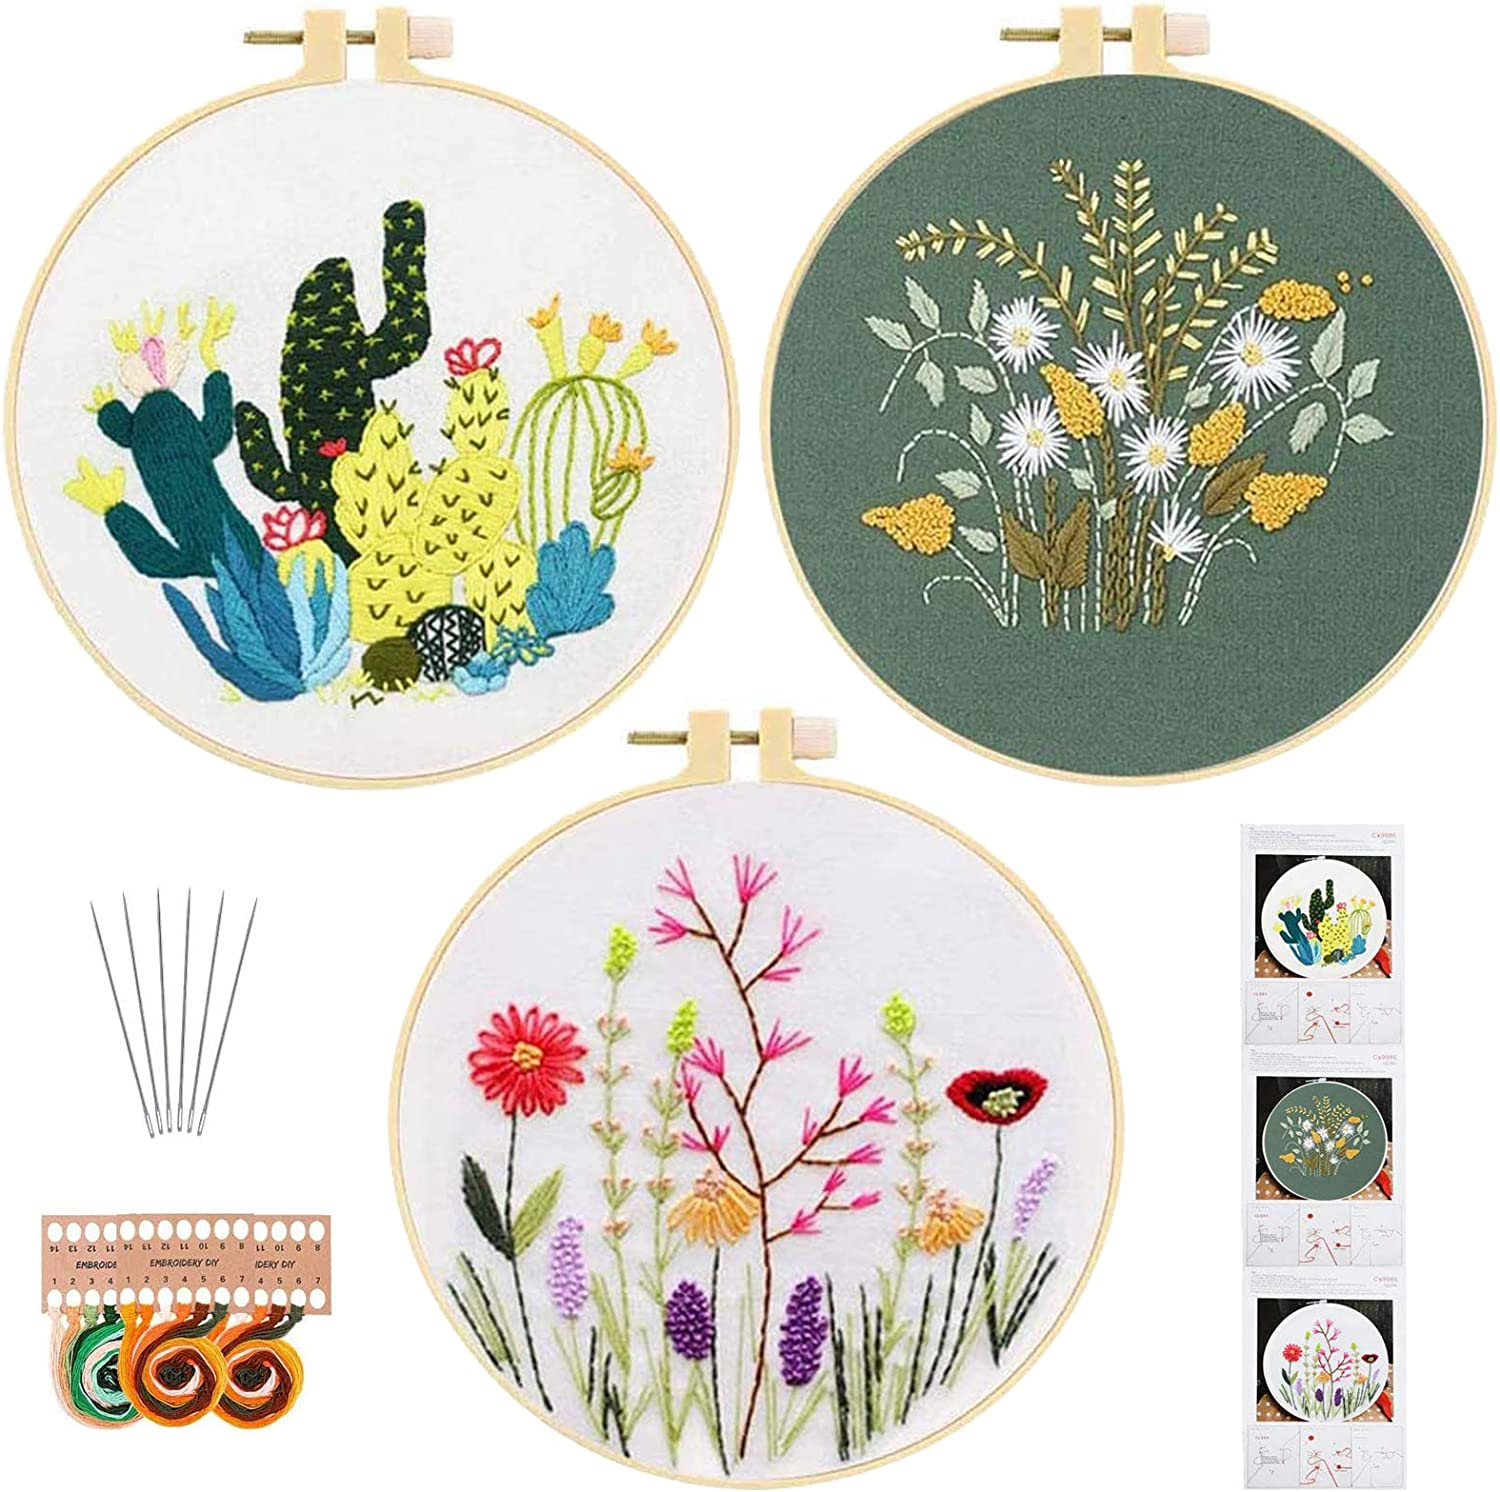 and Experts Cross-stitching and More \u2013 For Beginners Intermediate 7M 6 Pack Cotton Embroidery Thread \u2013 Needlepoint Embroidery